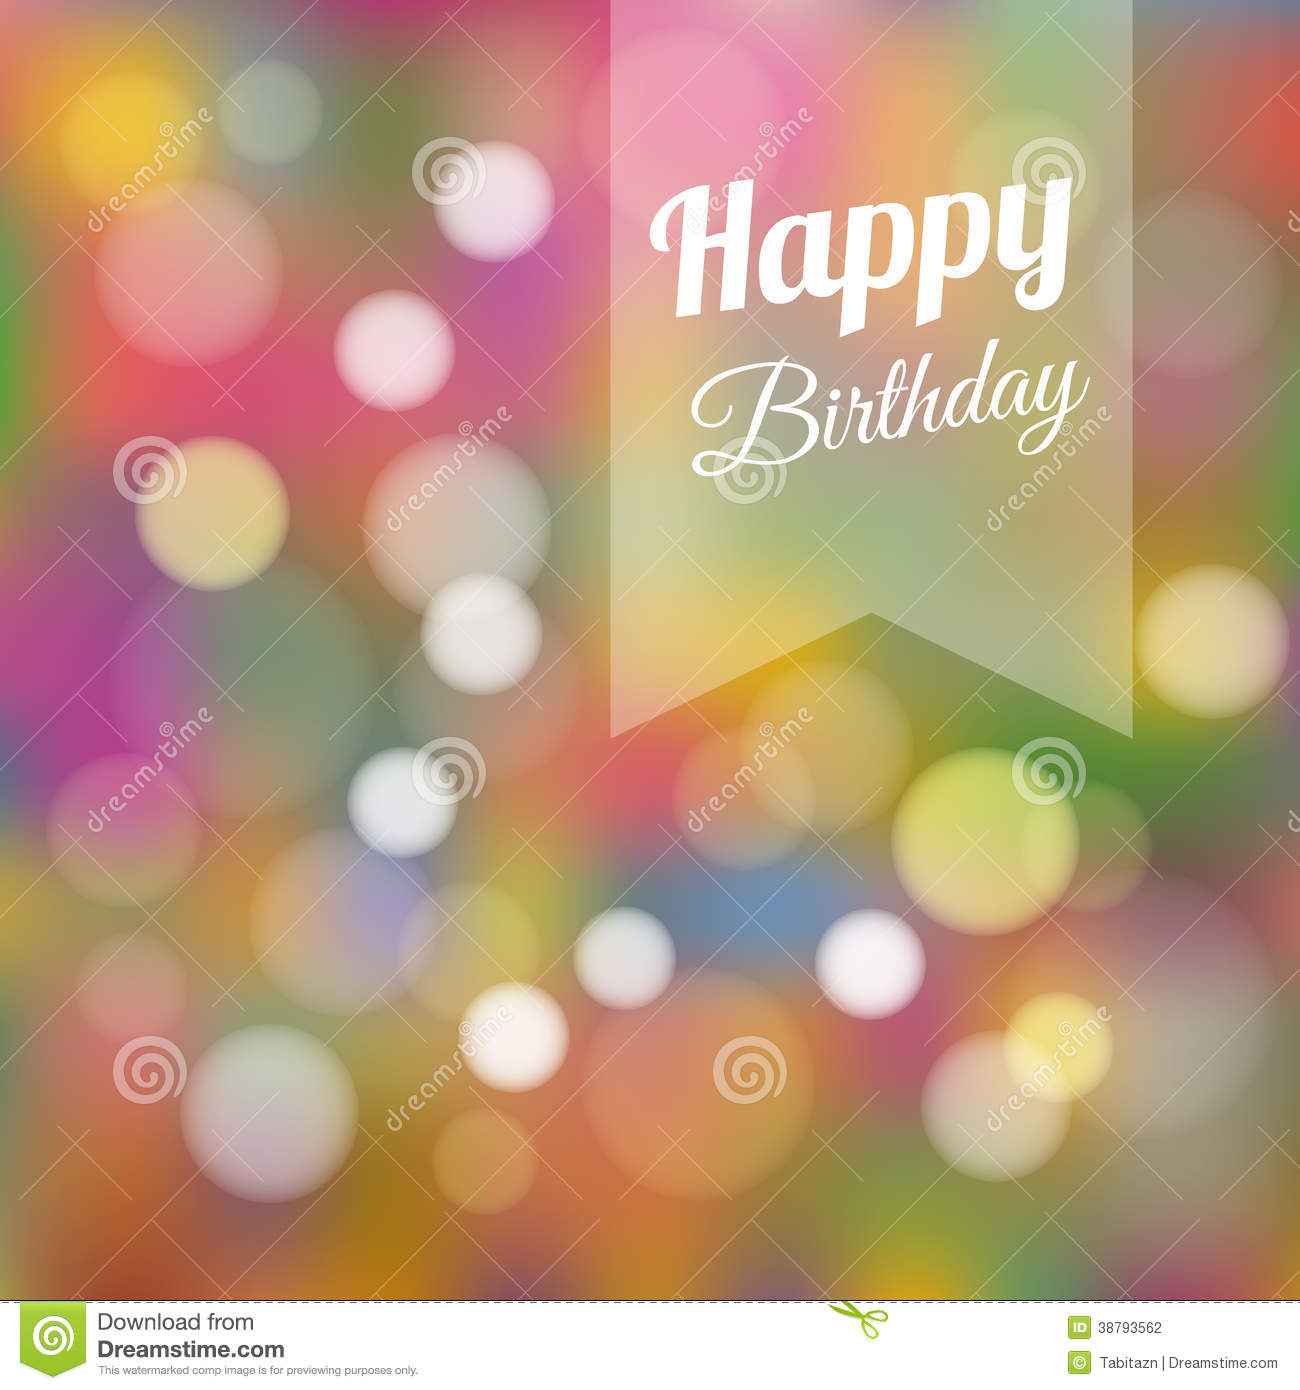 Birthday card invitation background stock vector illustration birthday card invitation background bookmarktalkfo Choice Image